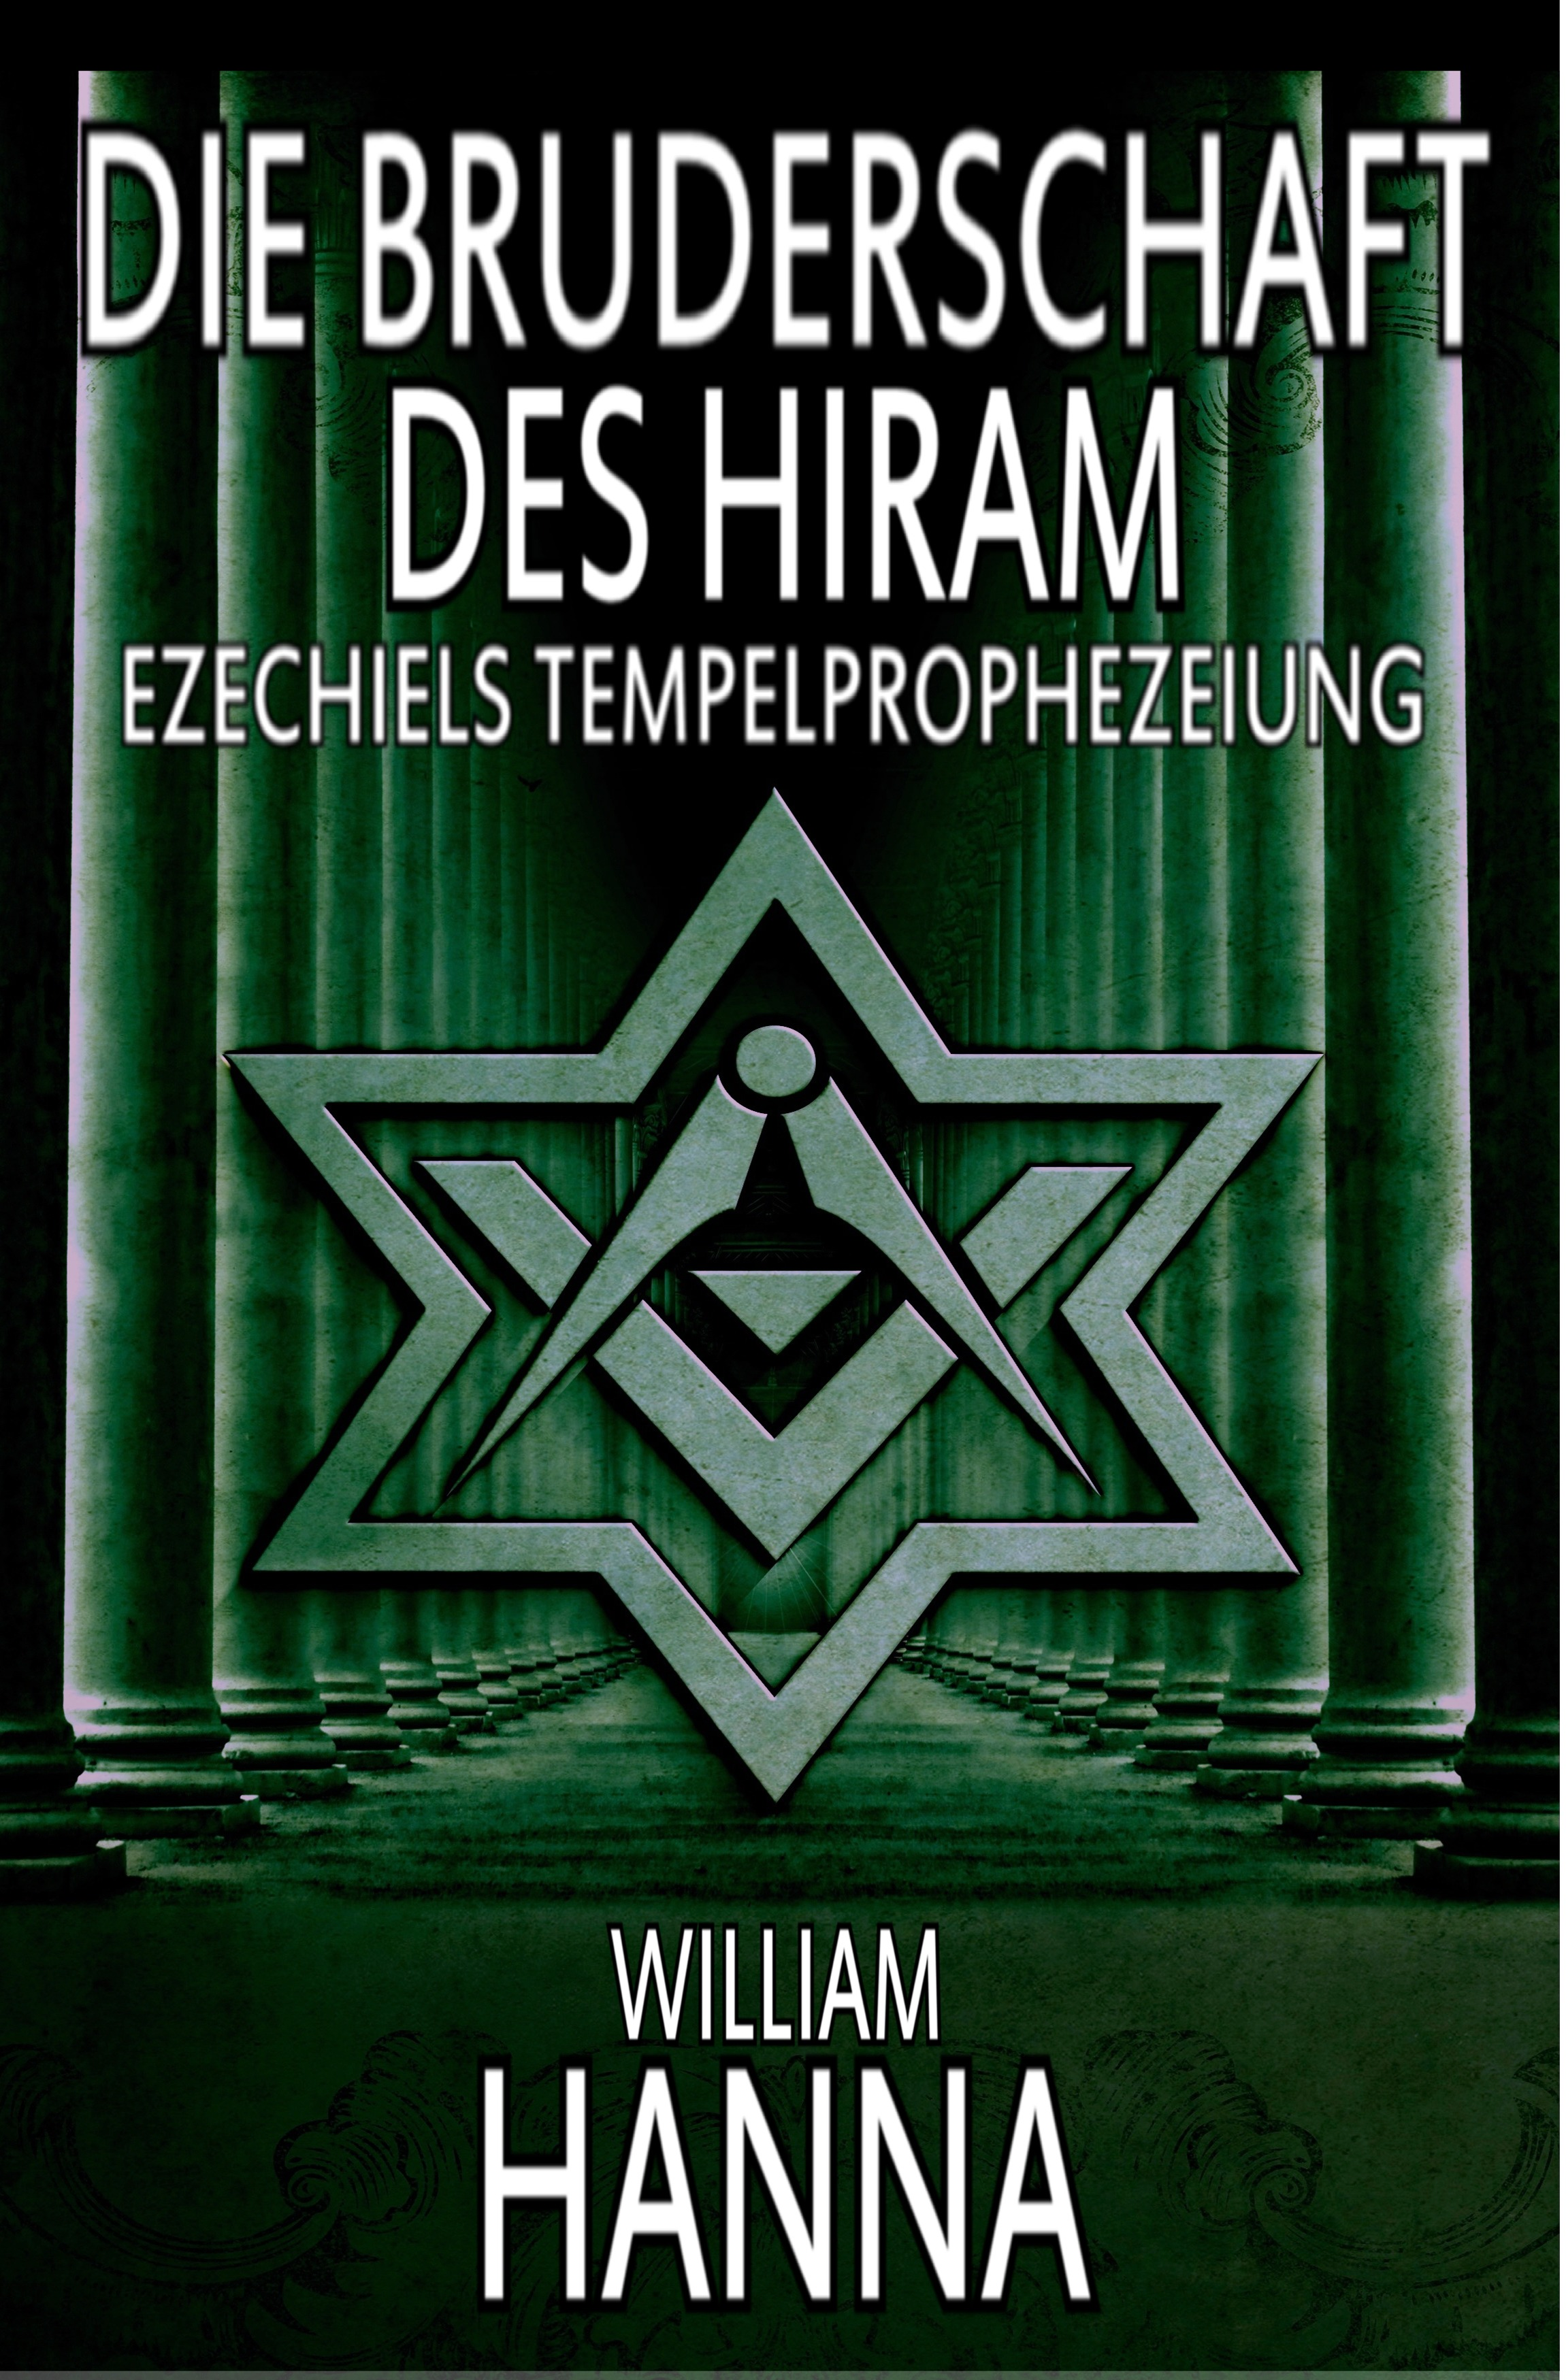 William Hanna Die Bruderschaft Des Hiram: Ezechiels Tempelprophezeiung настенная плитка emigres petra sahara xl blanco 25x75